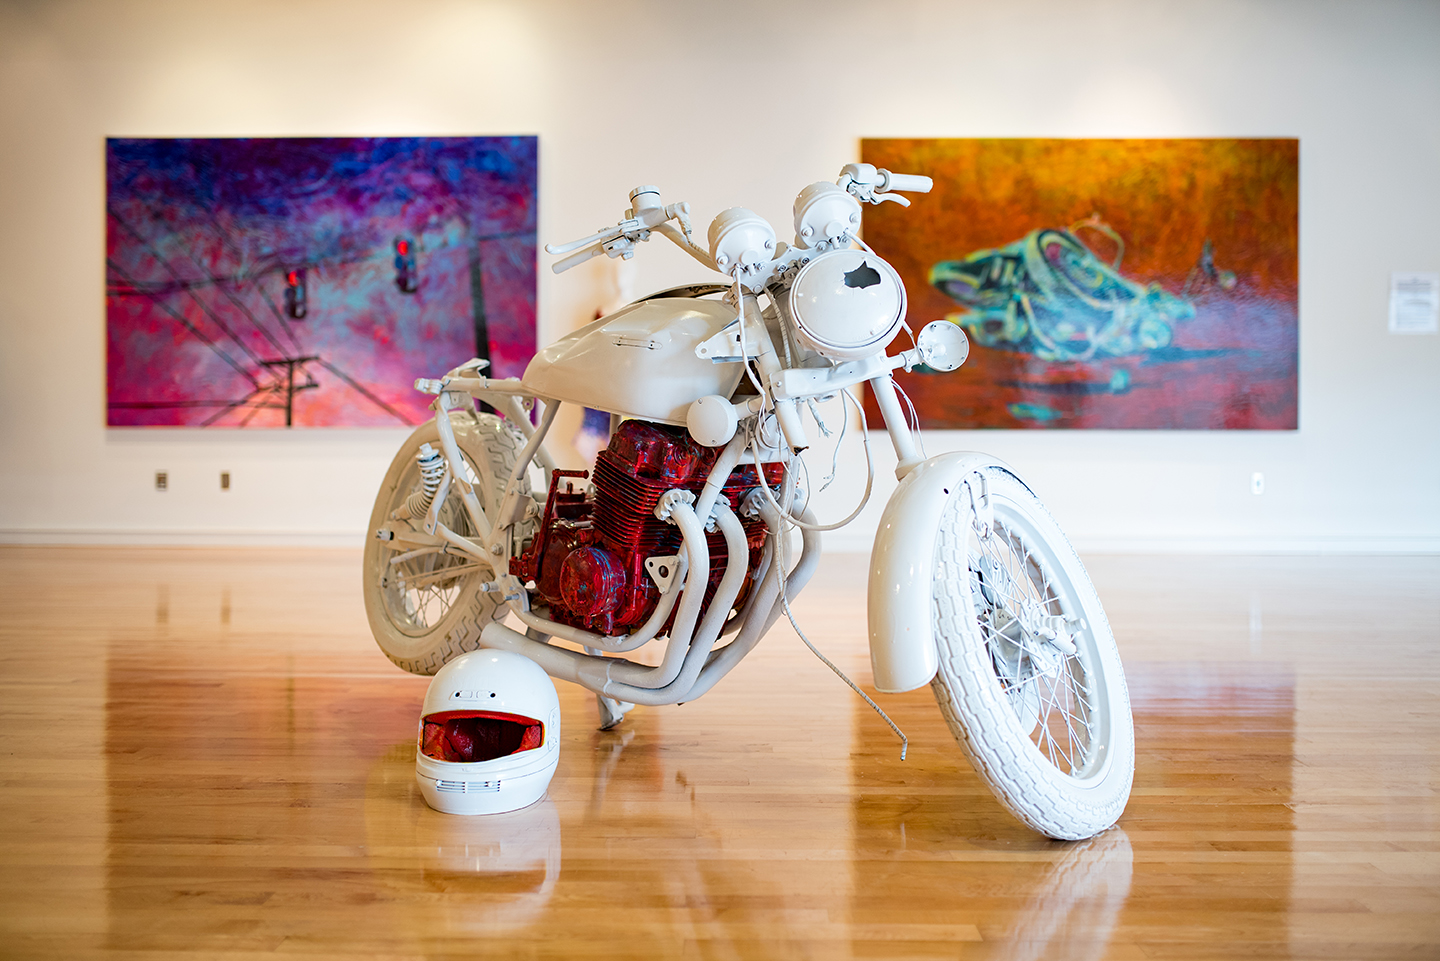 """""""Wrecked Bike""""   by Lennon Michalski, 36 x 48 x 84 in, Honda Motorcycle and paint (2016) 